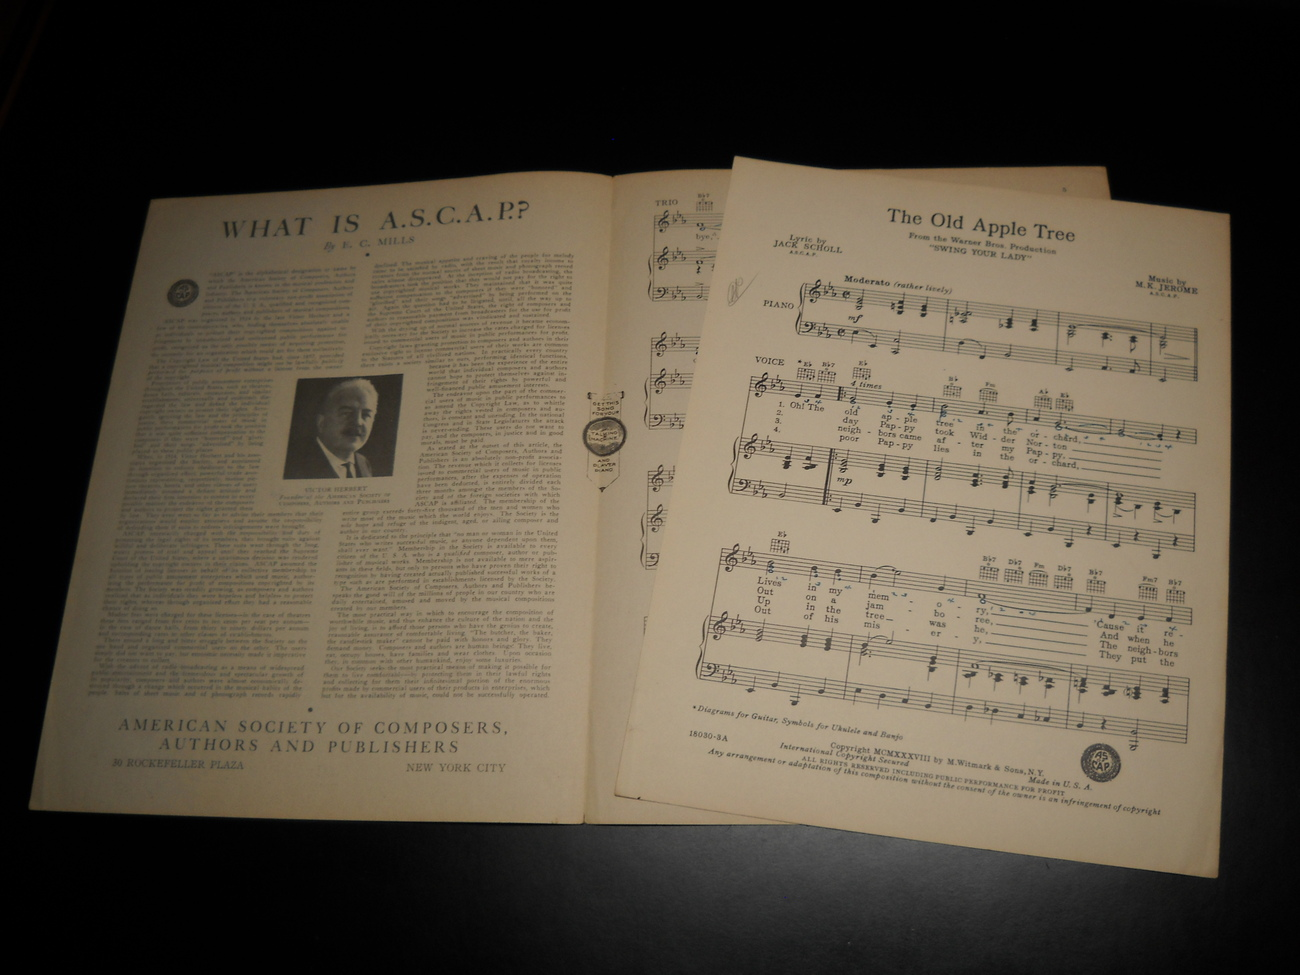 Sheet_music_the_old_apple_tree_swing_your_lady_humphrey_bogart_1938_m_witmark_06